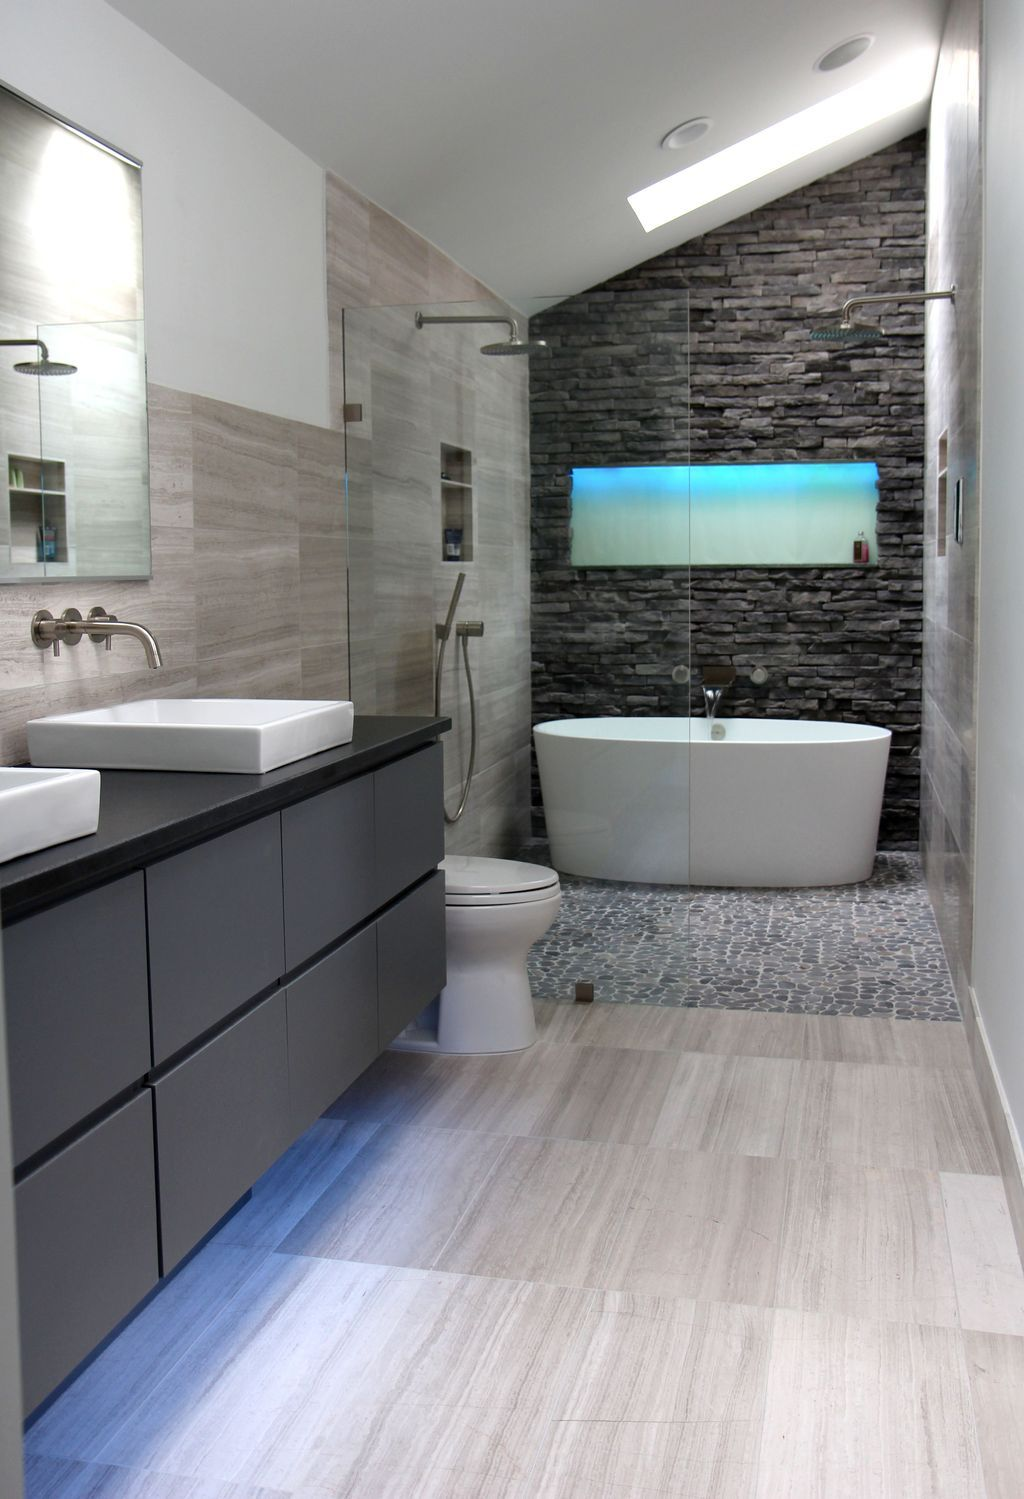 44 Popular Modern Contemporary Bathroom Design Ideas To Make